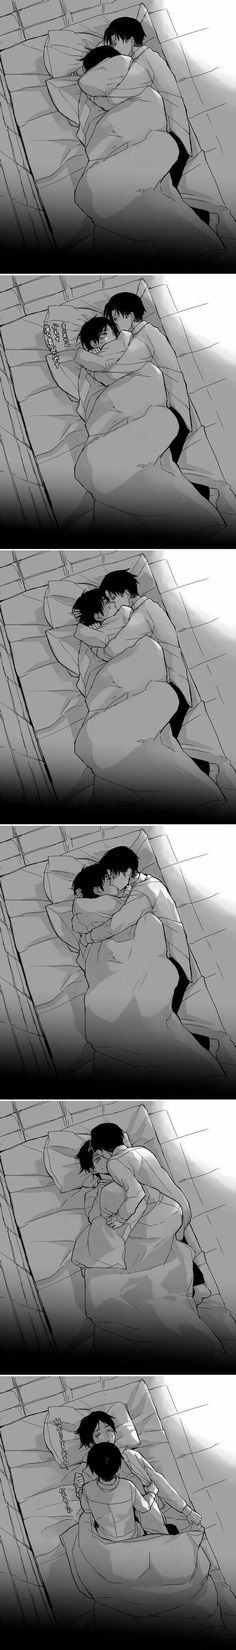 You couldn't have left it at cuddling Levi-